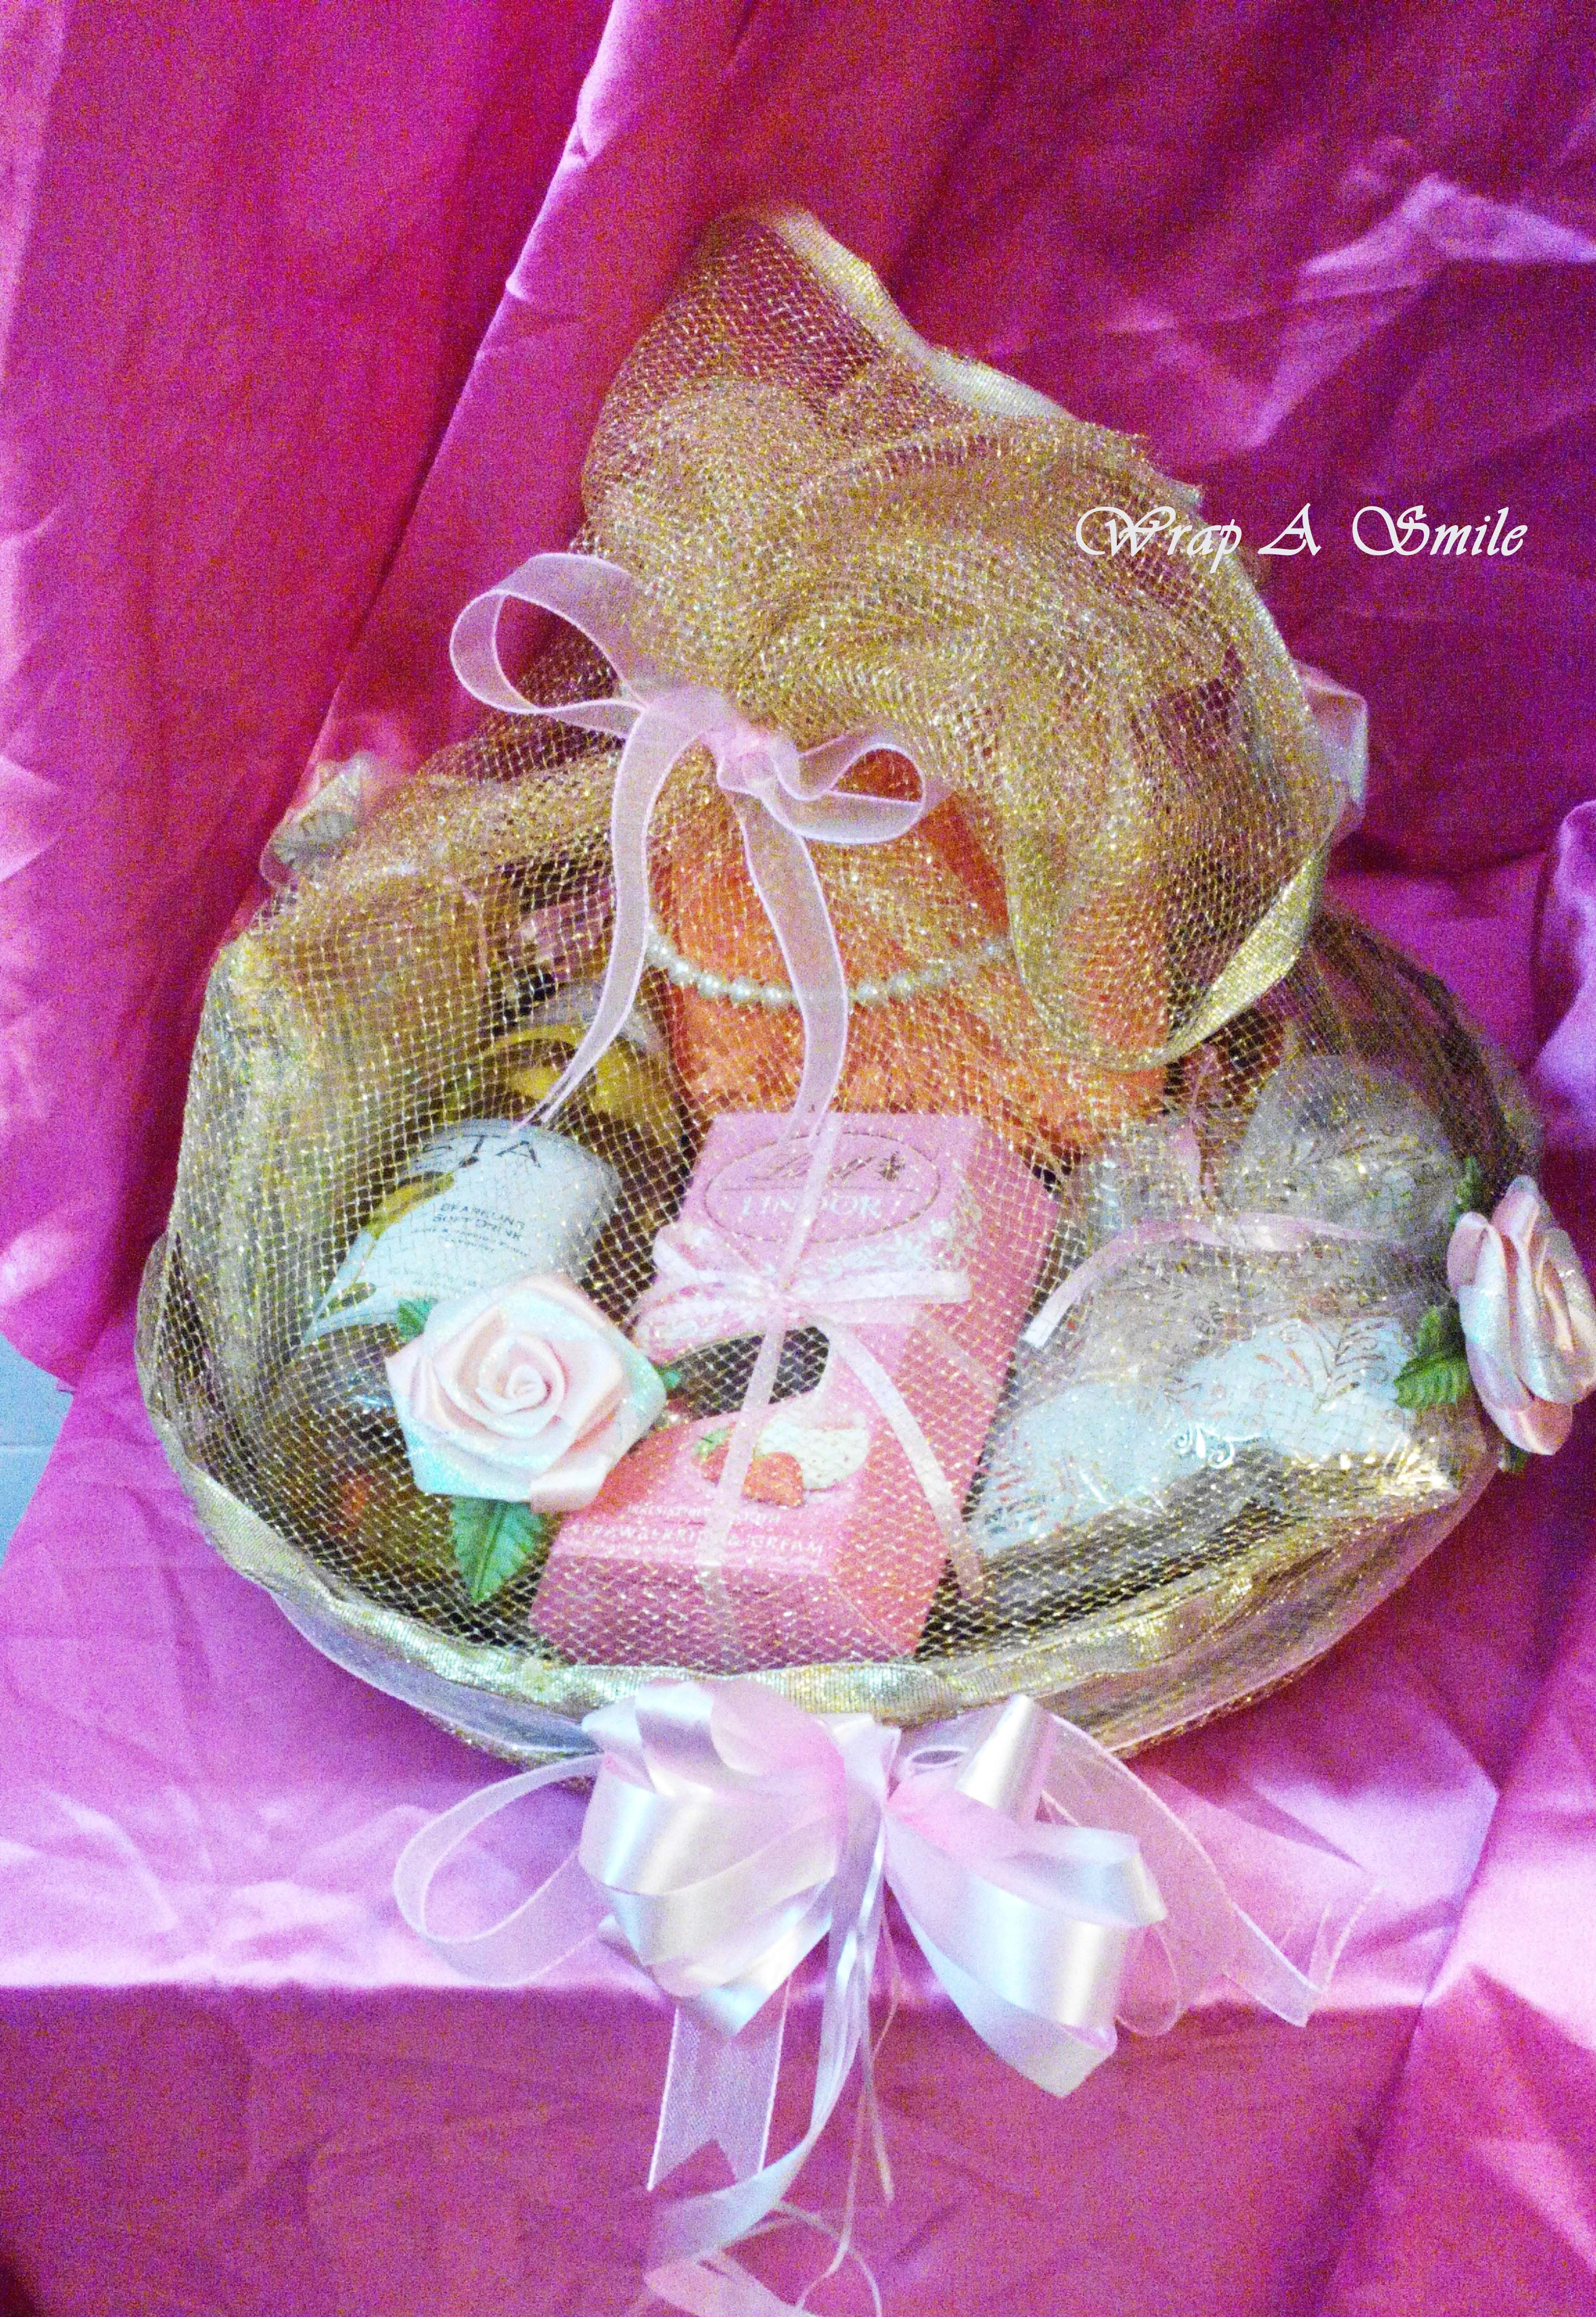 Gold Net & Light Pink flowers & Bows Hamper For orders/inquiries ...